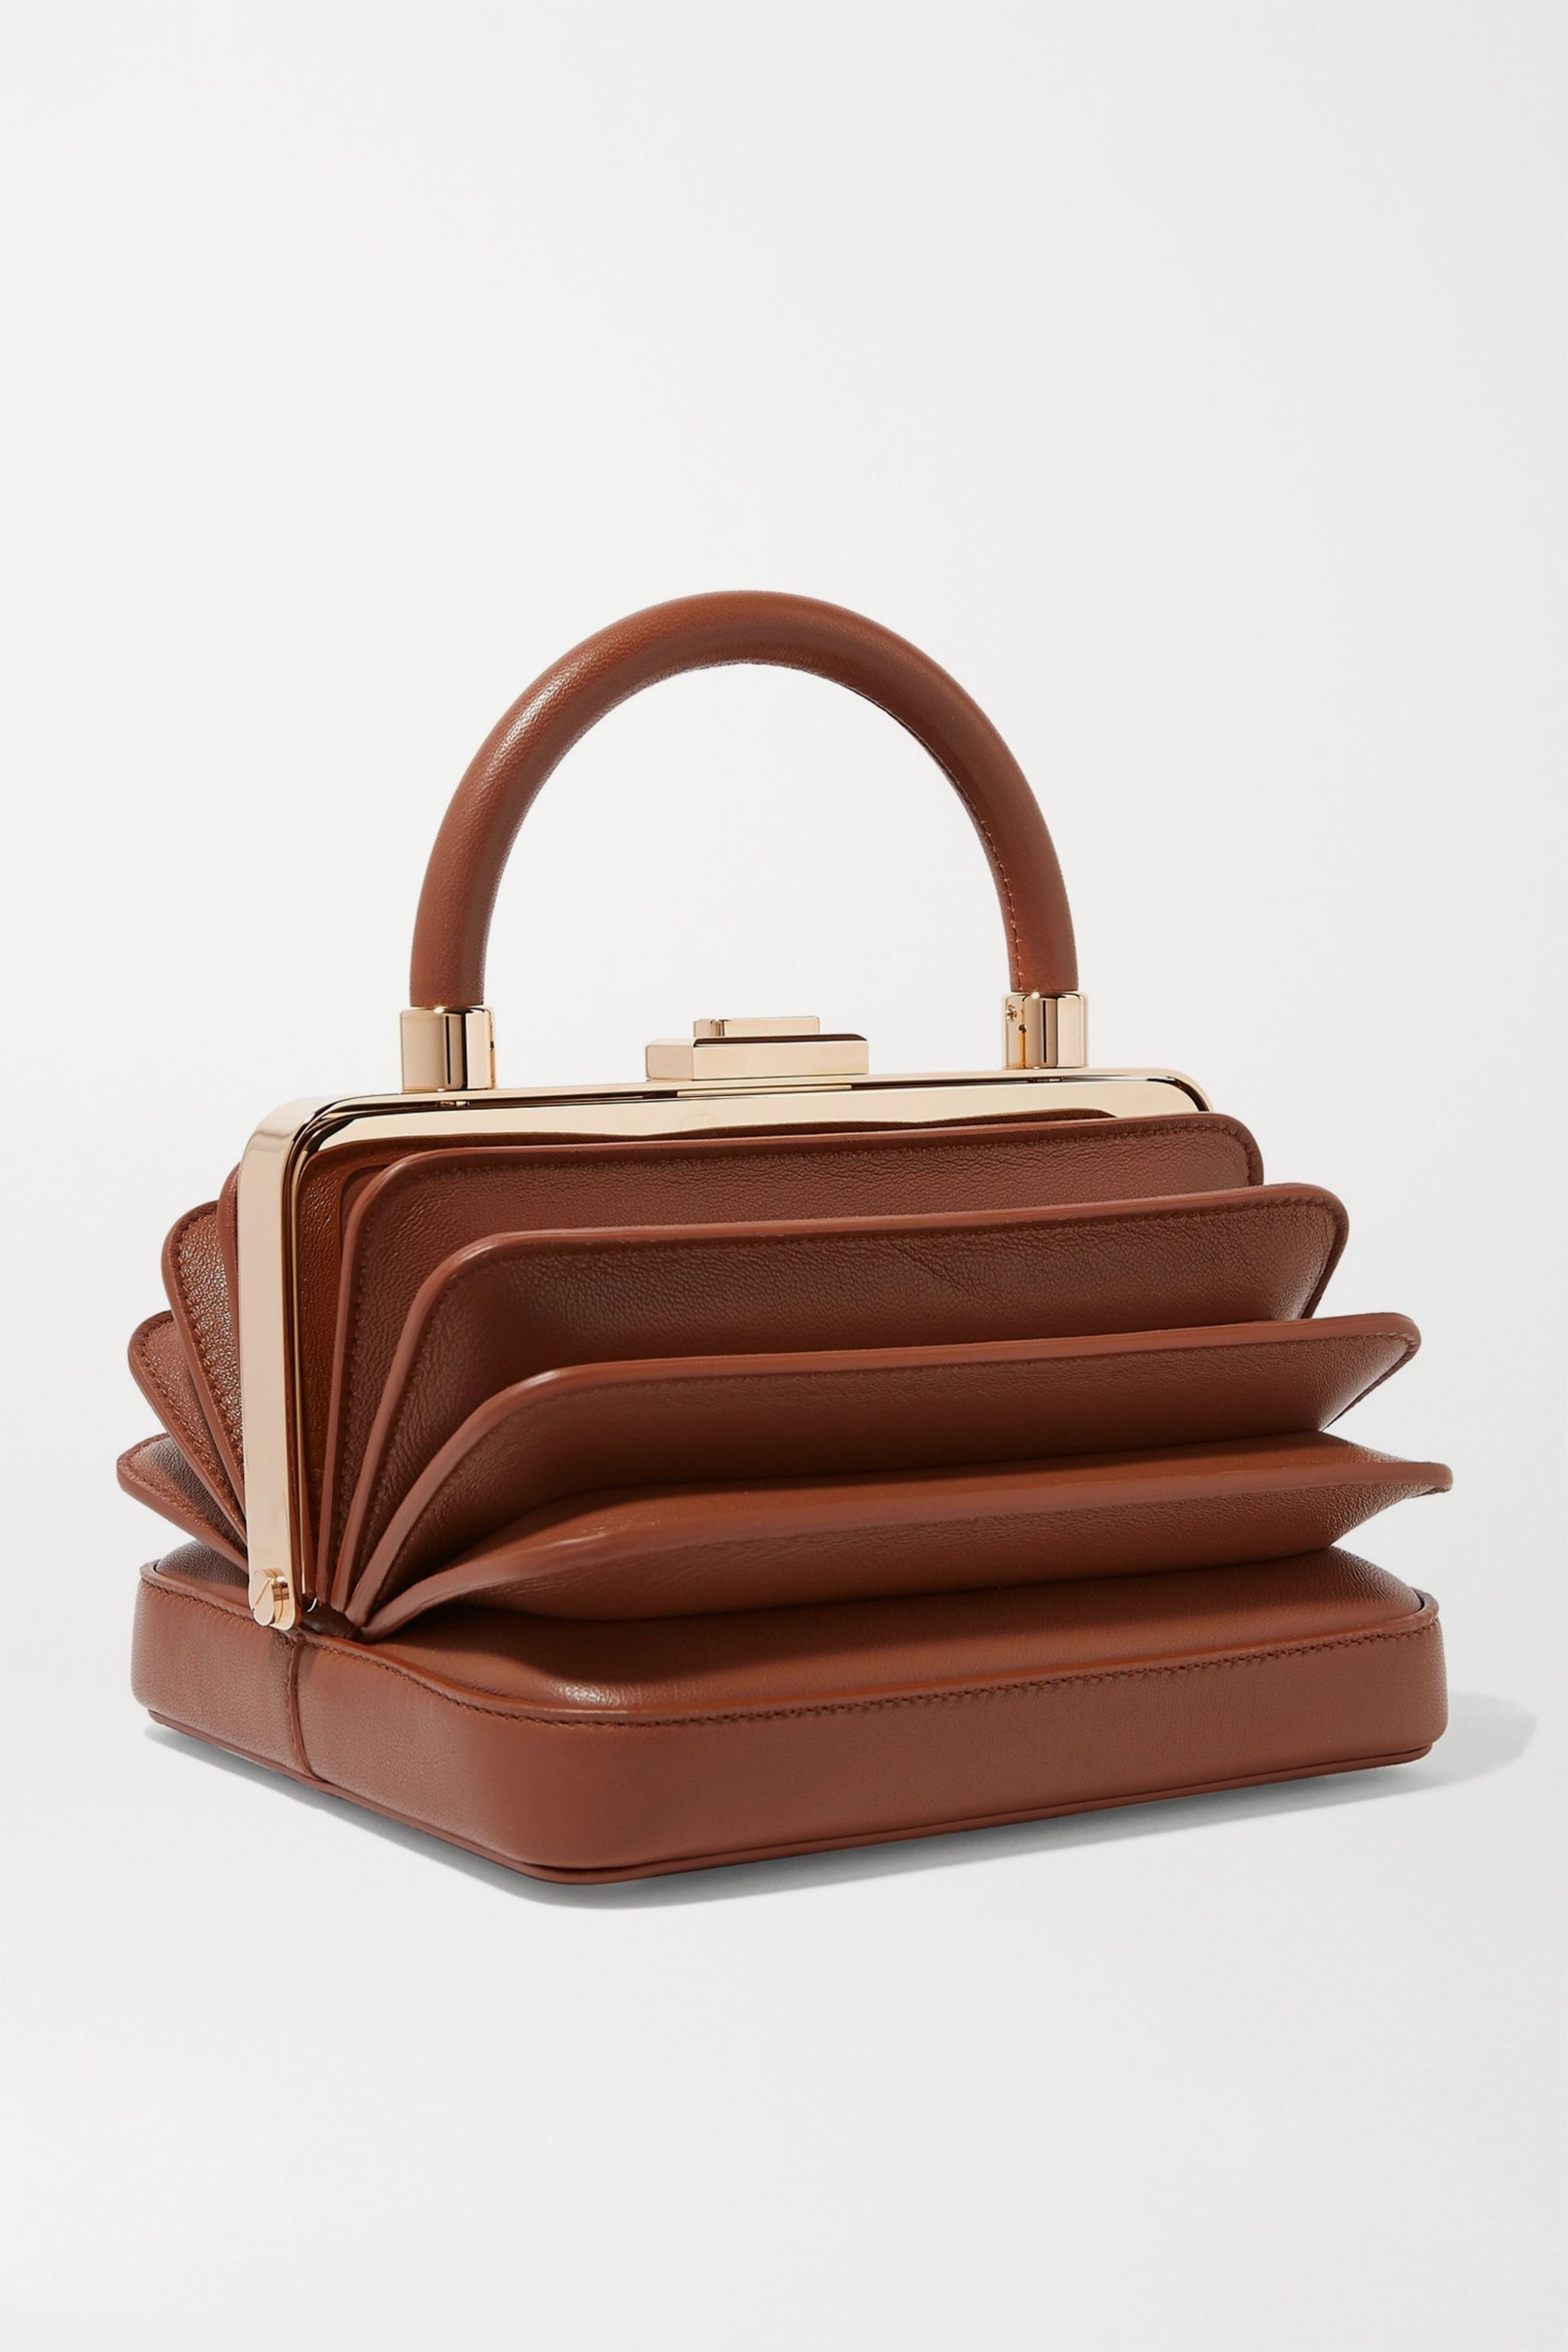 Gabriela Hearst Diana leather tote